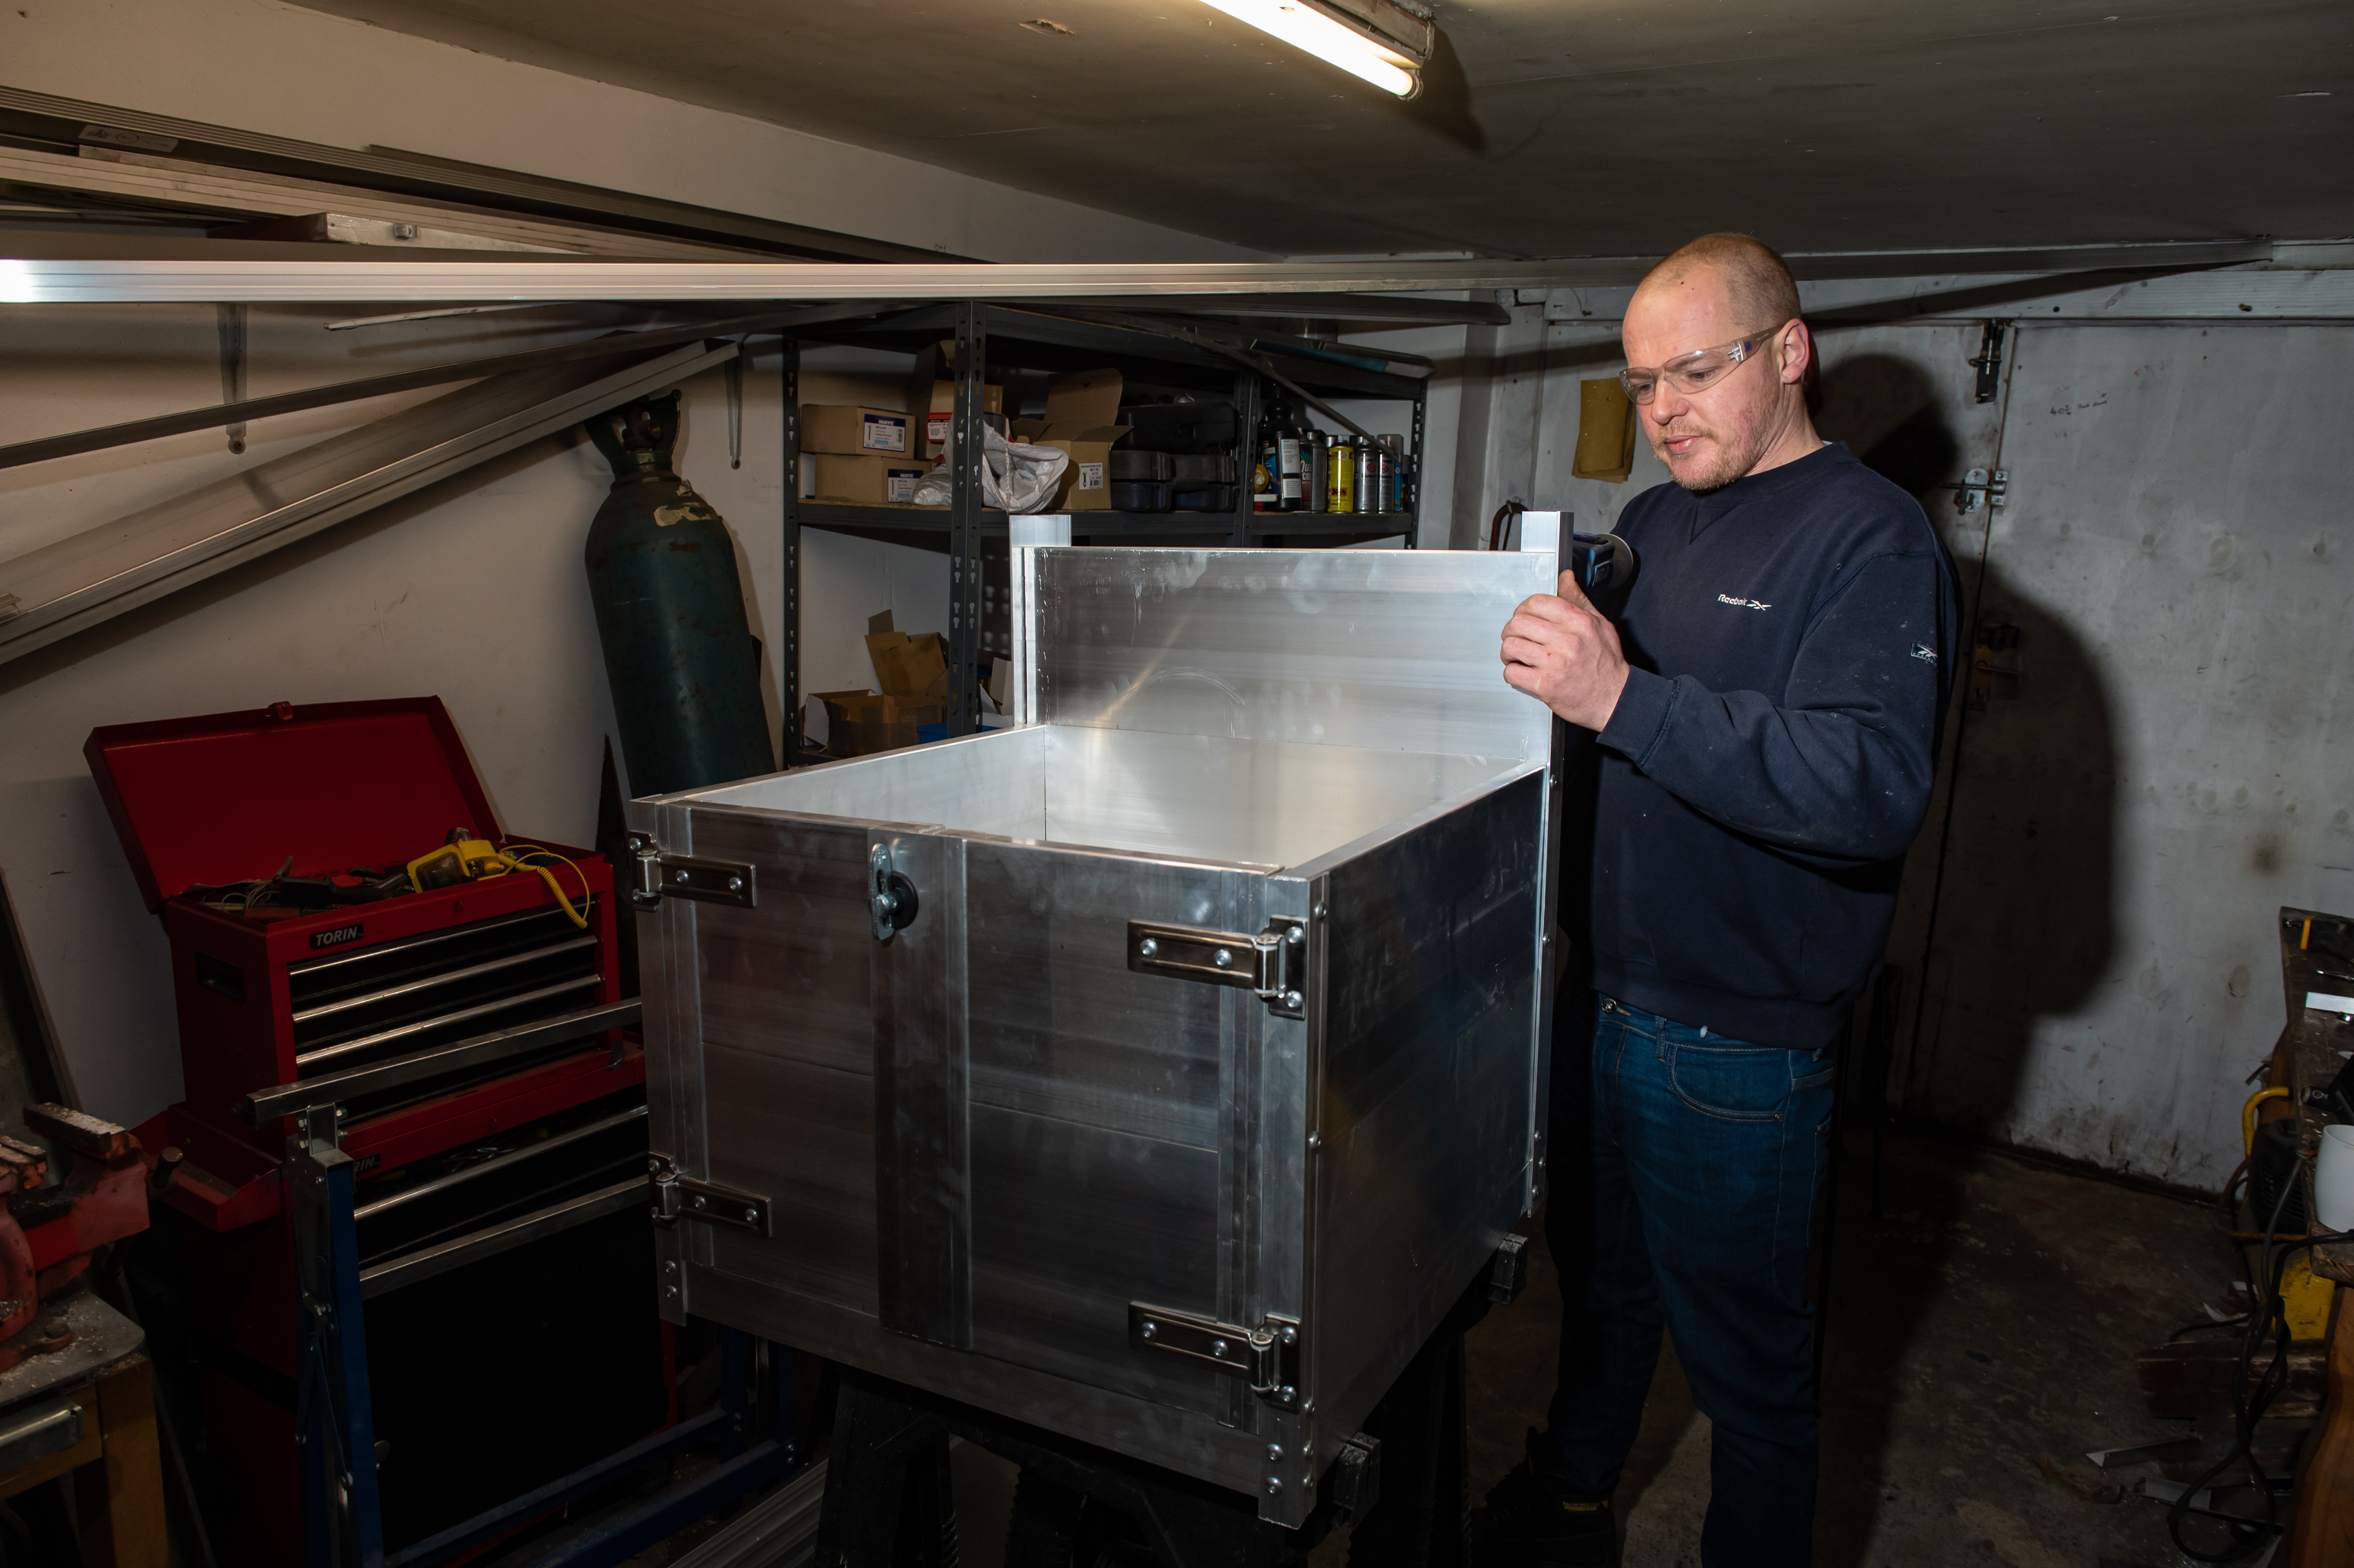 Buckler, 40, spent 12 hours over two days constructing the £600 replica of a Mercedes Actros HGV in his garage in the West Midlands for his nephew. (SWNS)